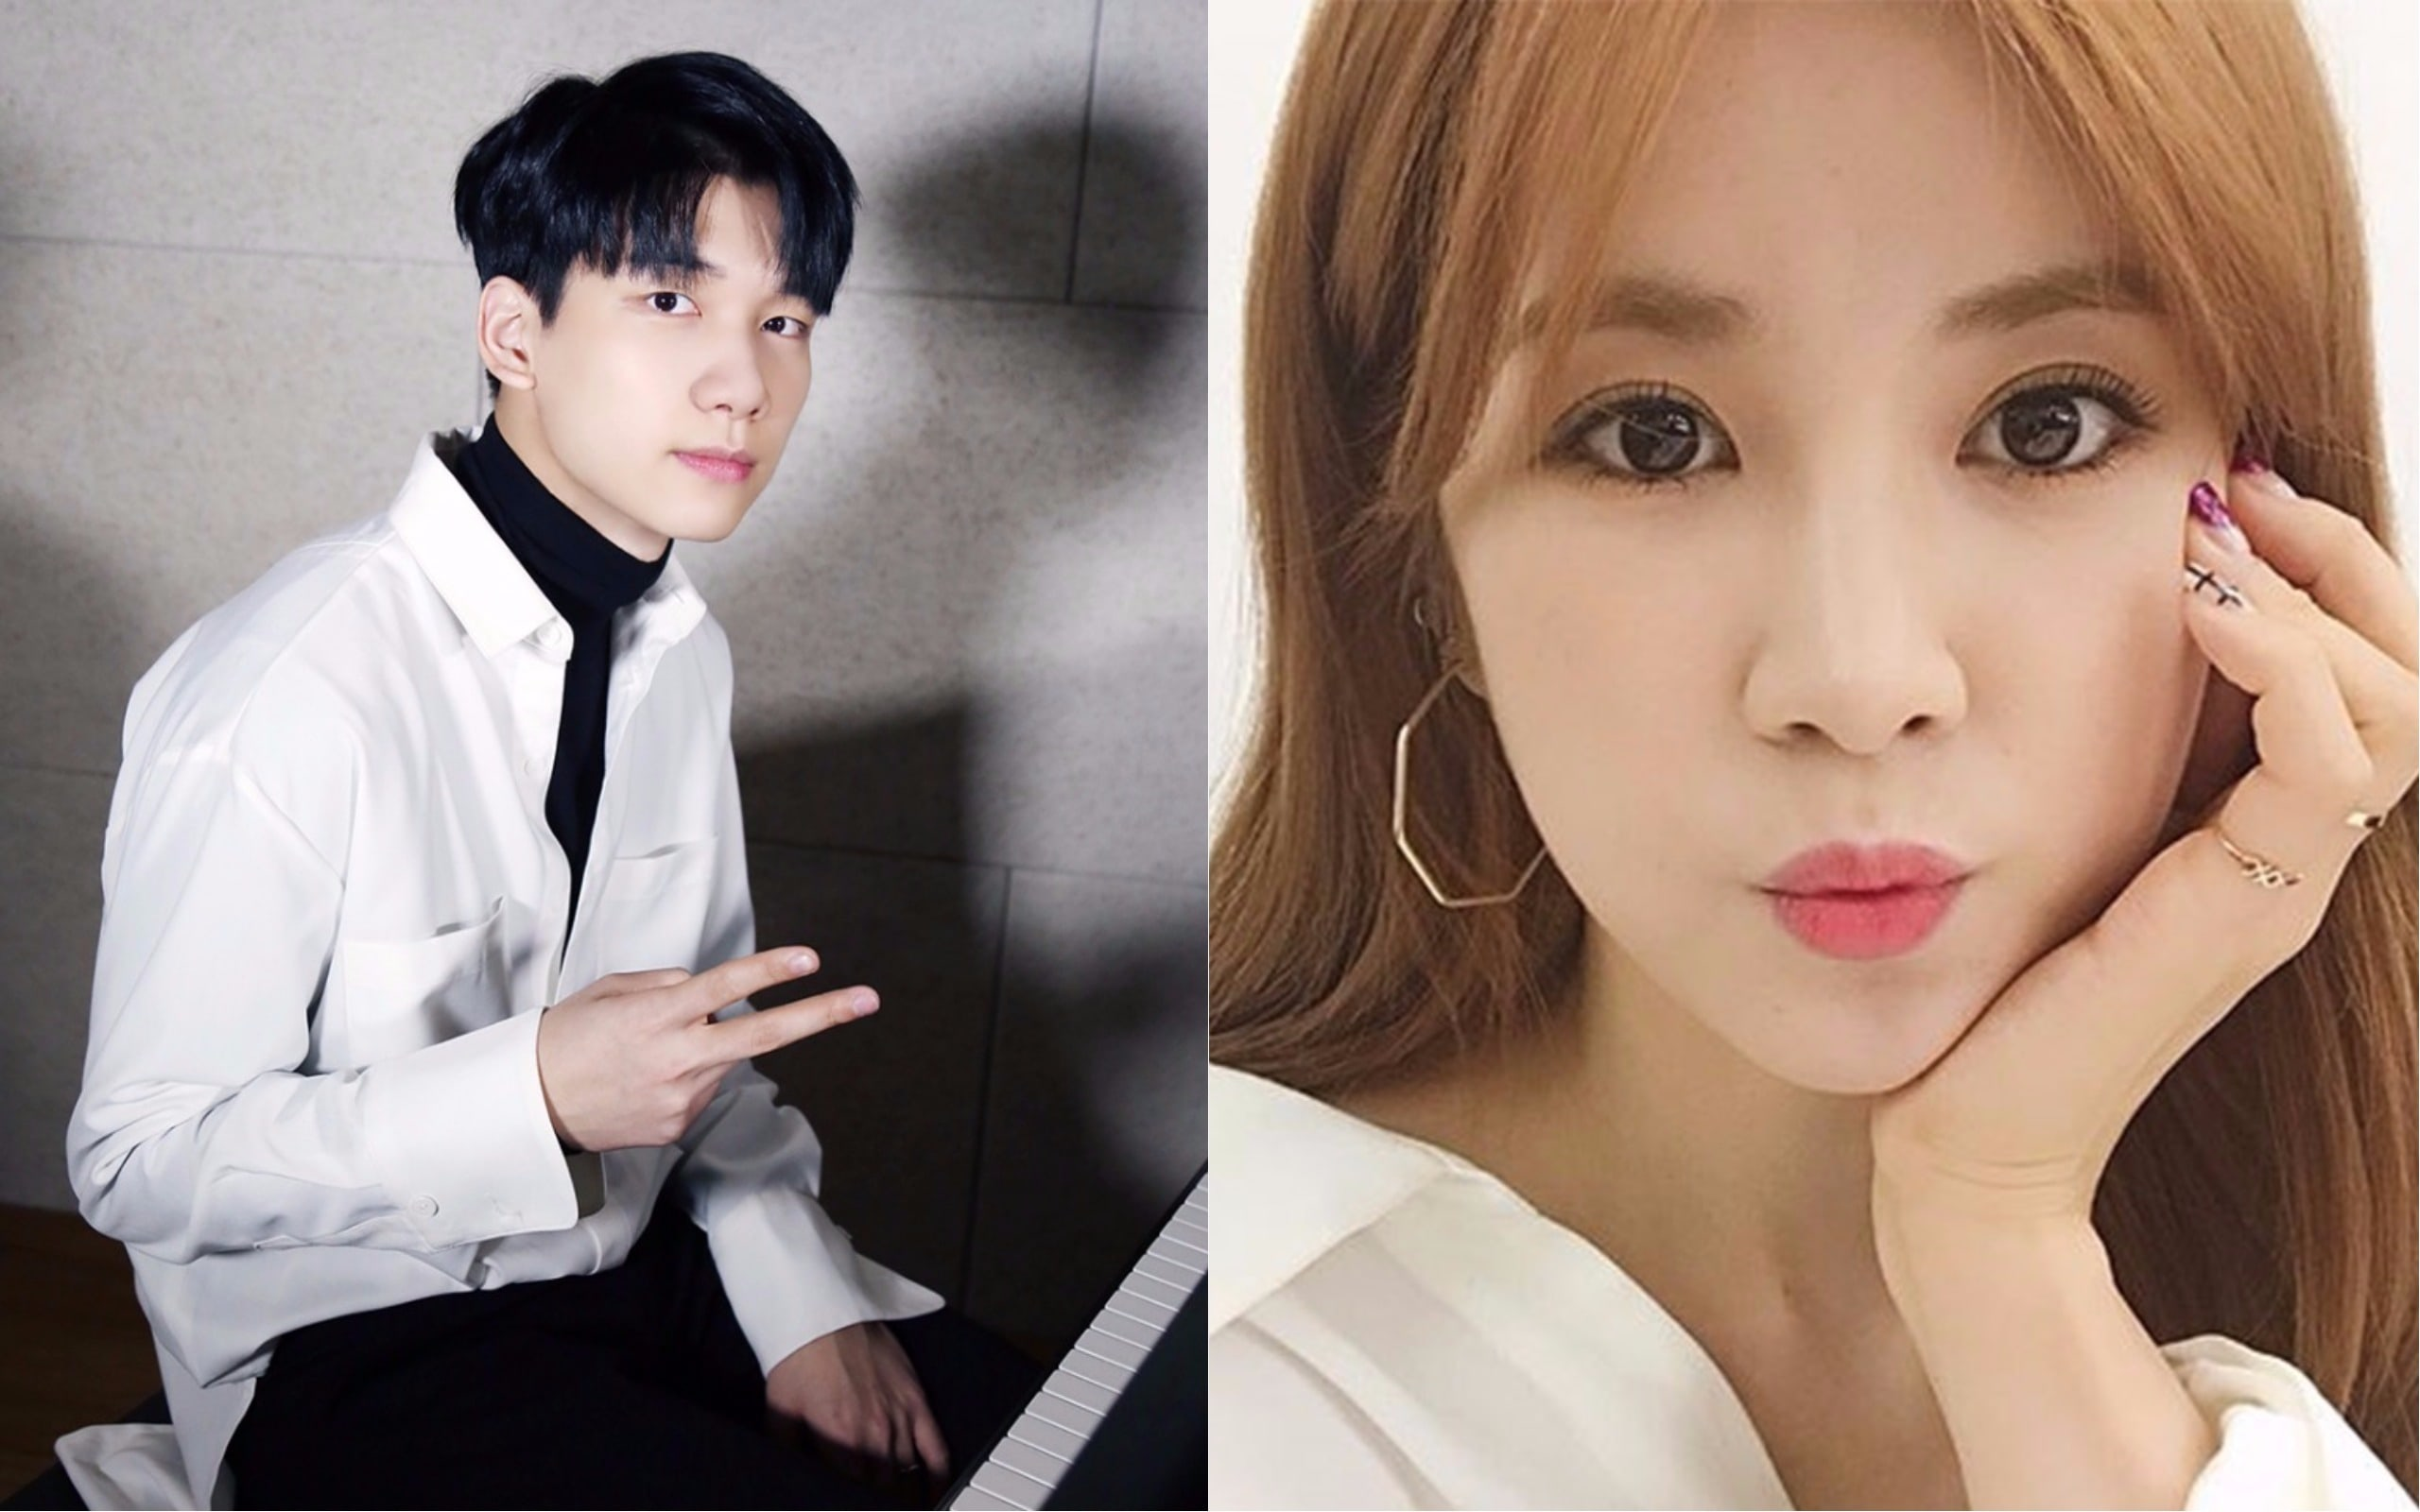 VIXXs Hyuk And Apinks Chorong Confirmed To Star In New Web Drama